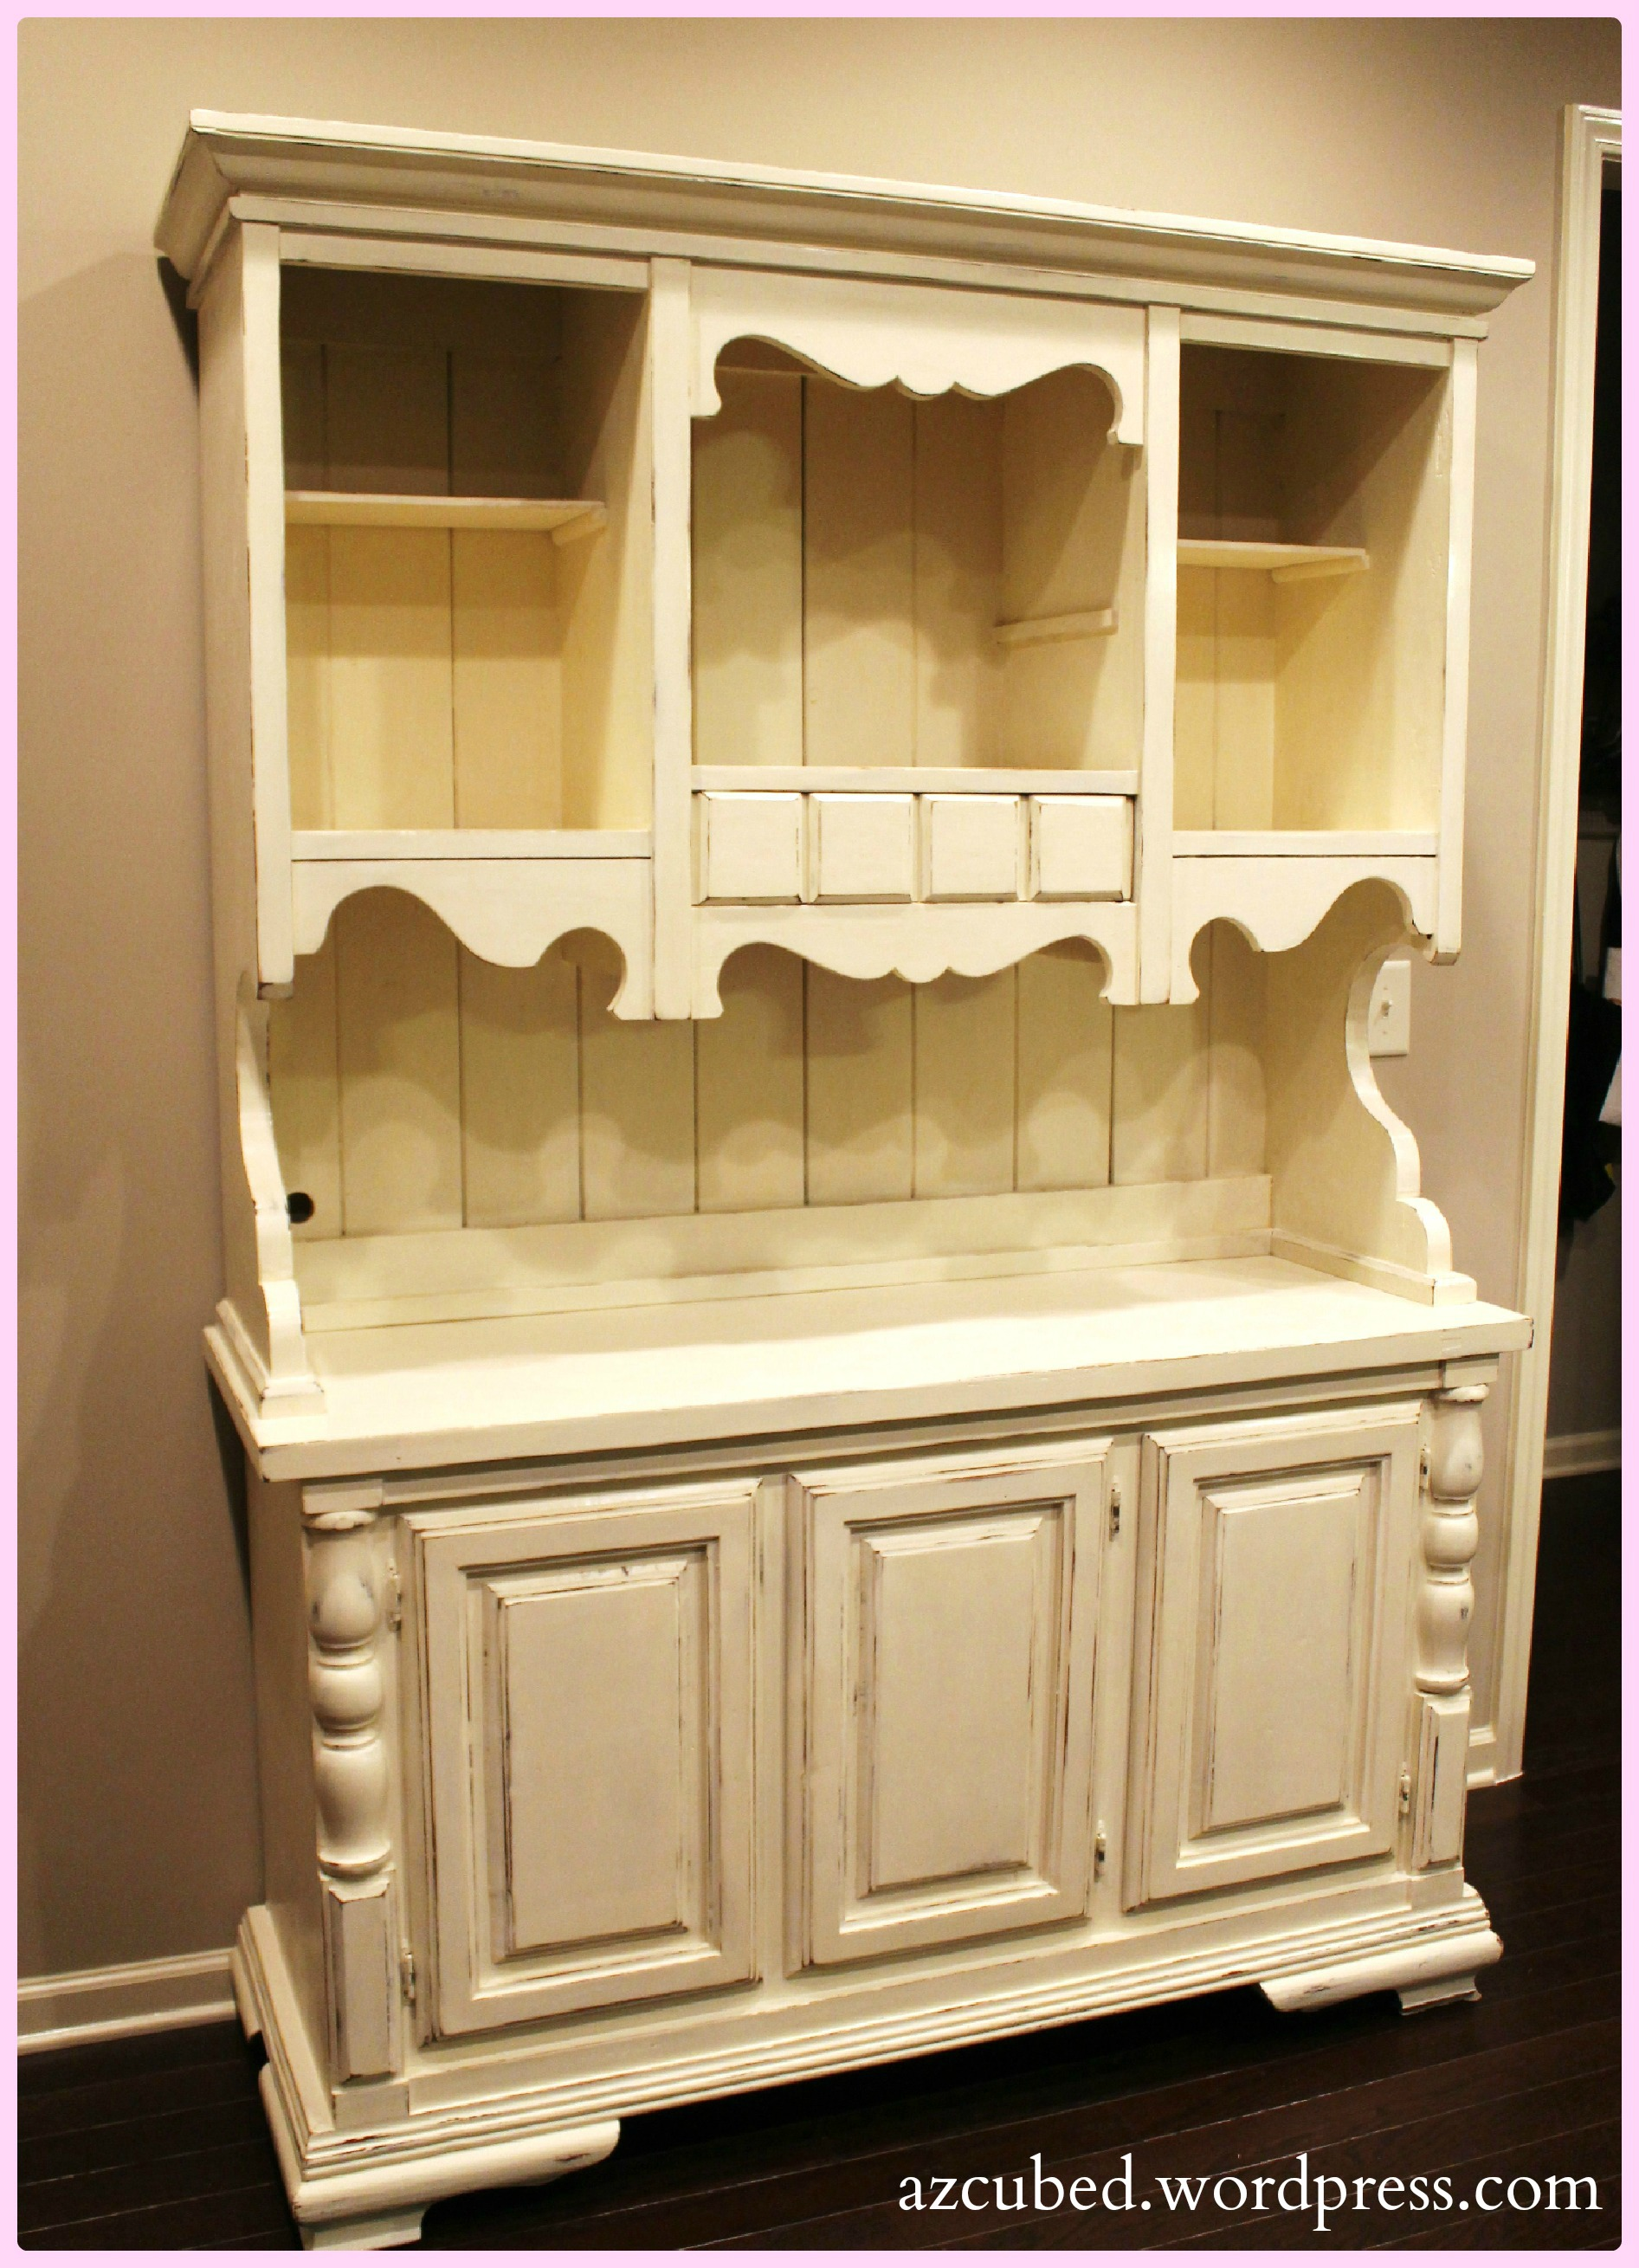 Refinished Farmhouse Hutch with Tutorial • Domestic Superhero on trash can for kitchen ideas, fall decor for kitchen ideas, shelf for kitchen ideas,